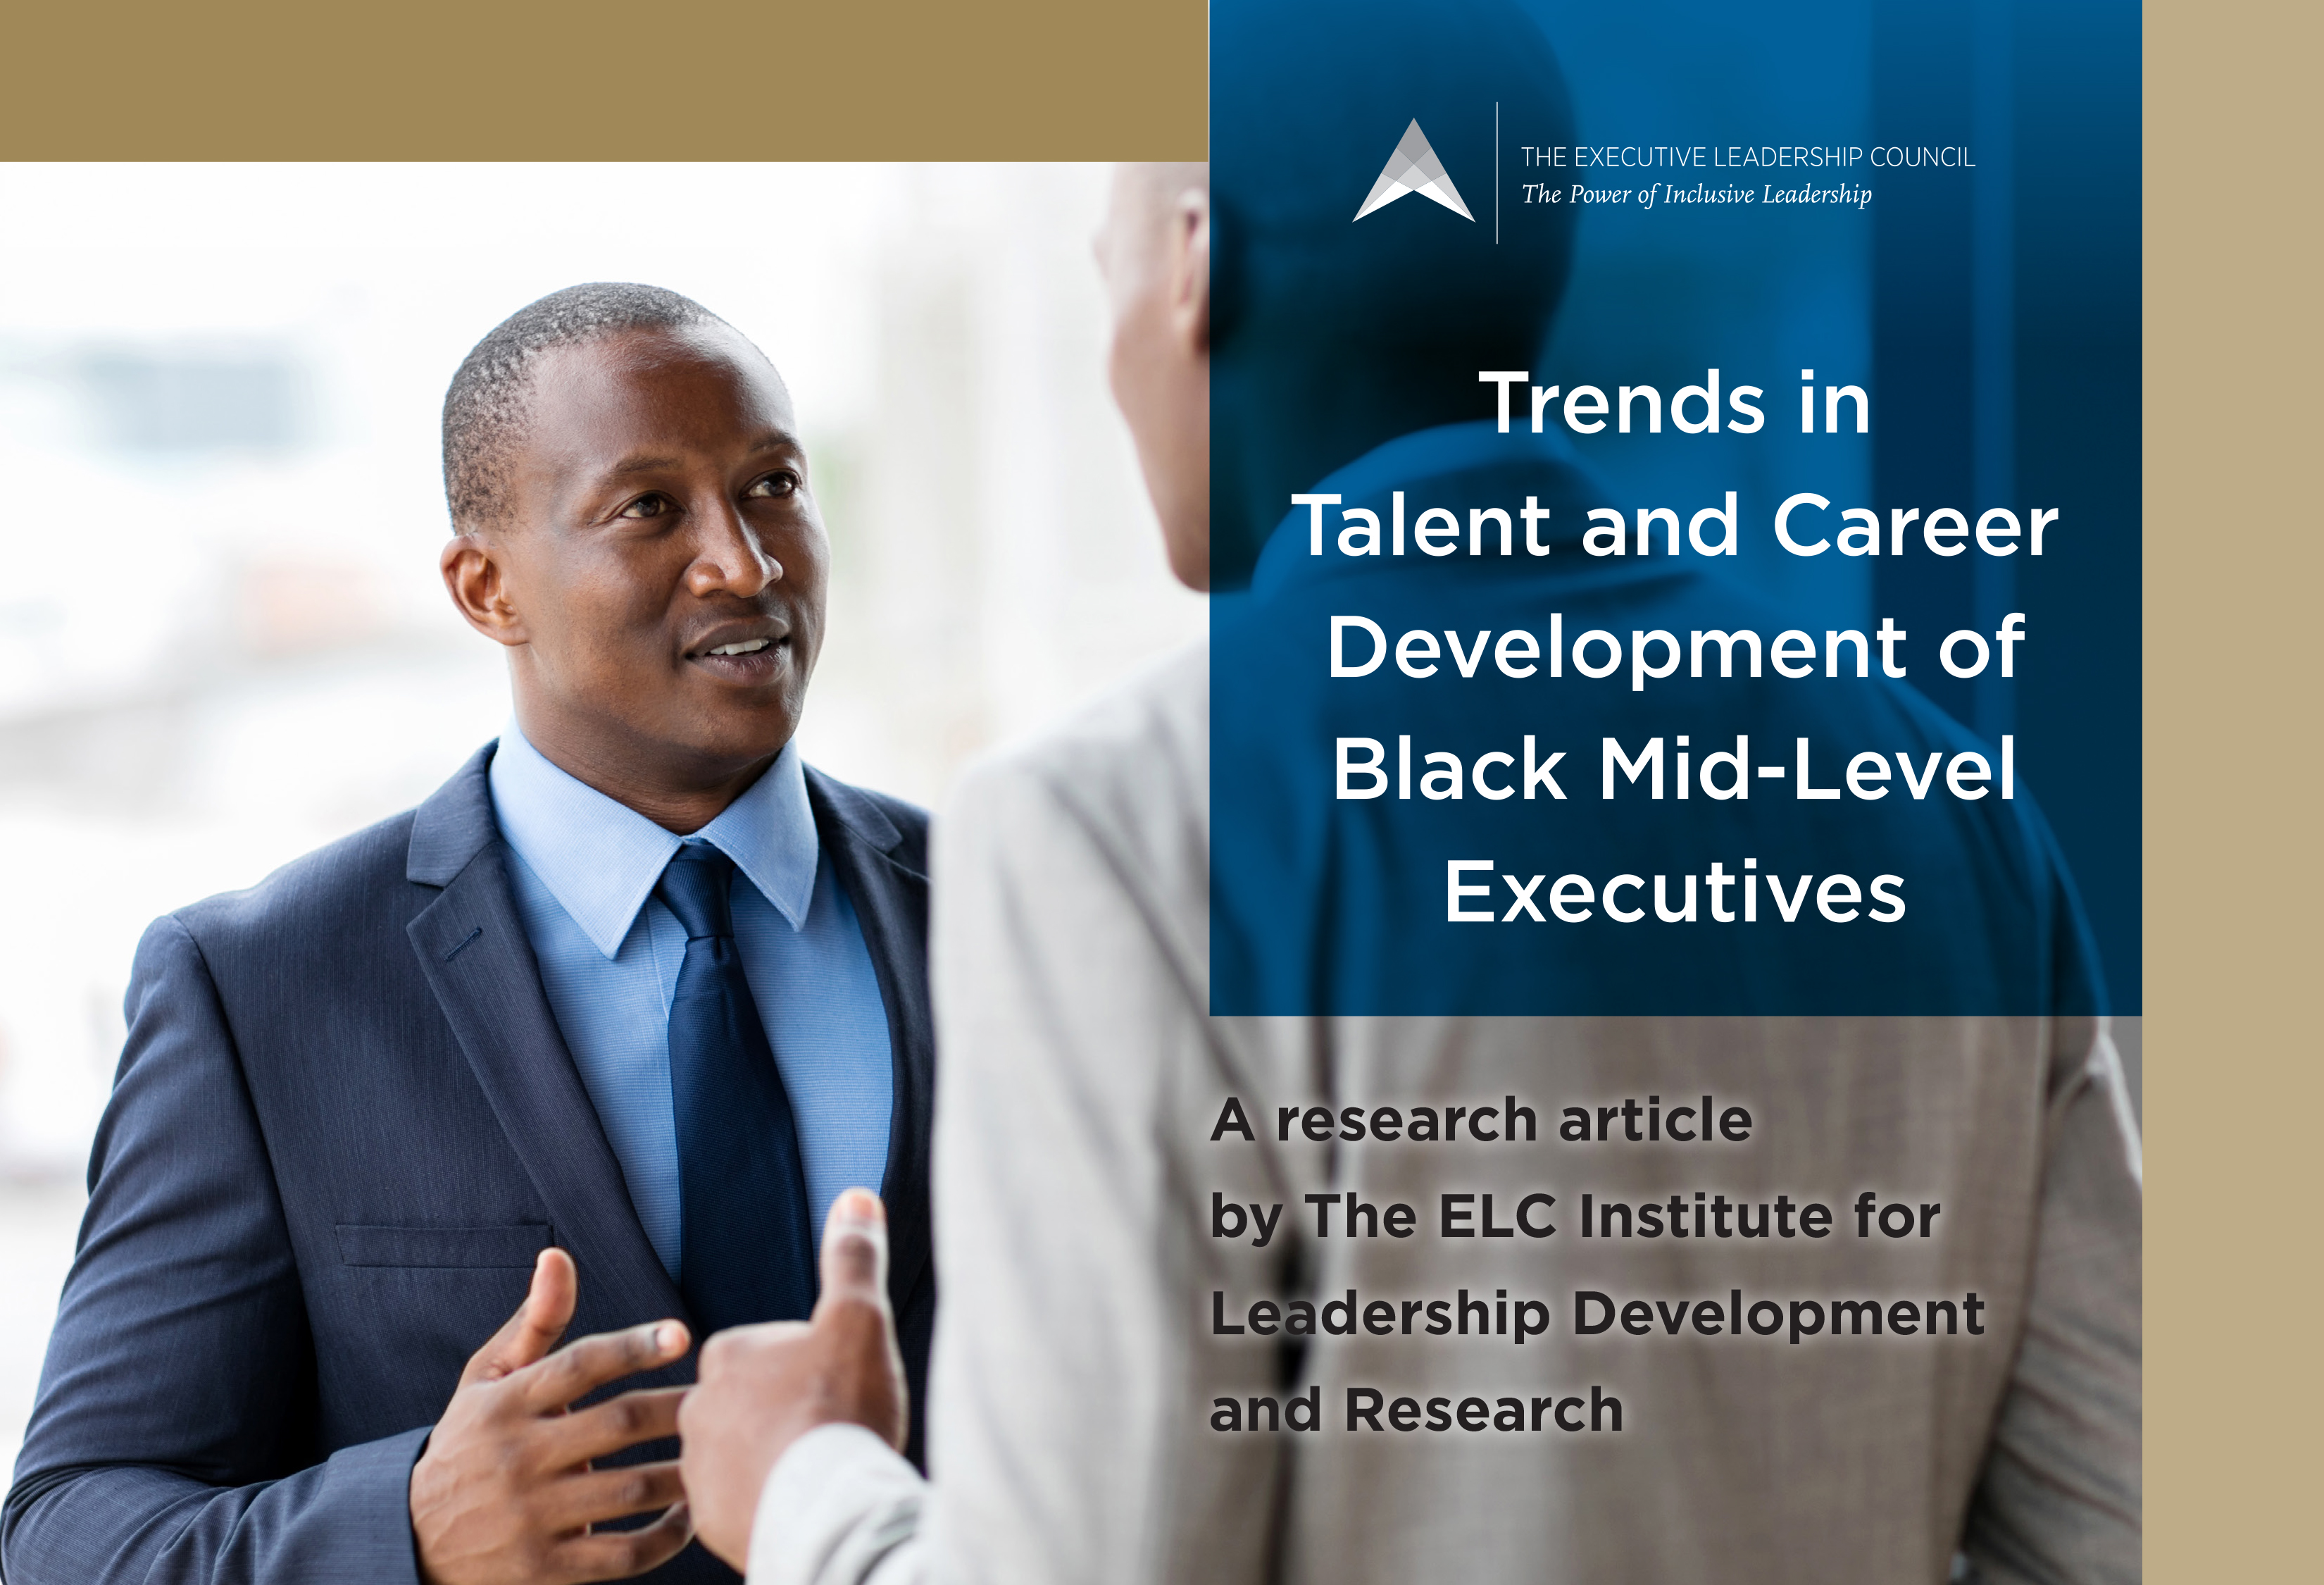 Trends in Talent and Career Development of Black Mid-Level Executives